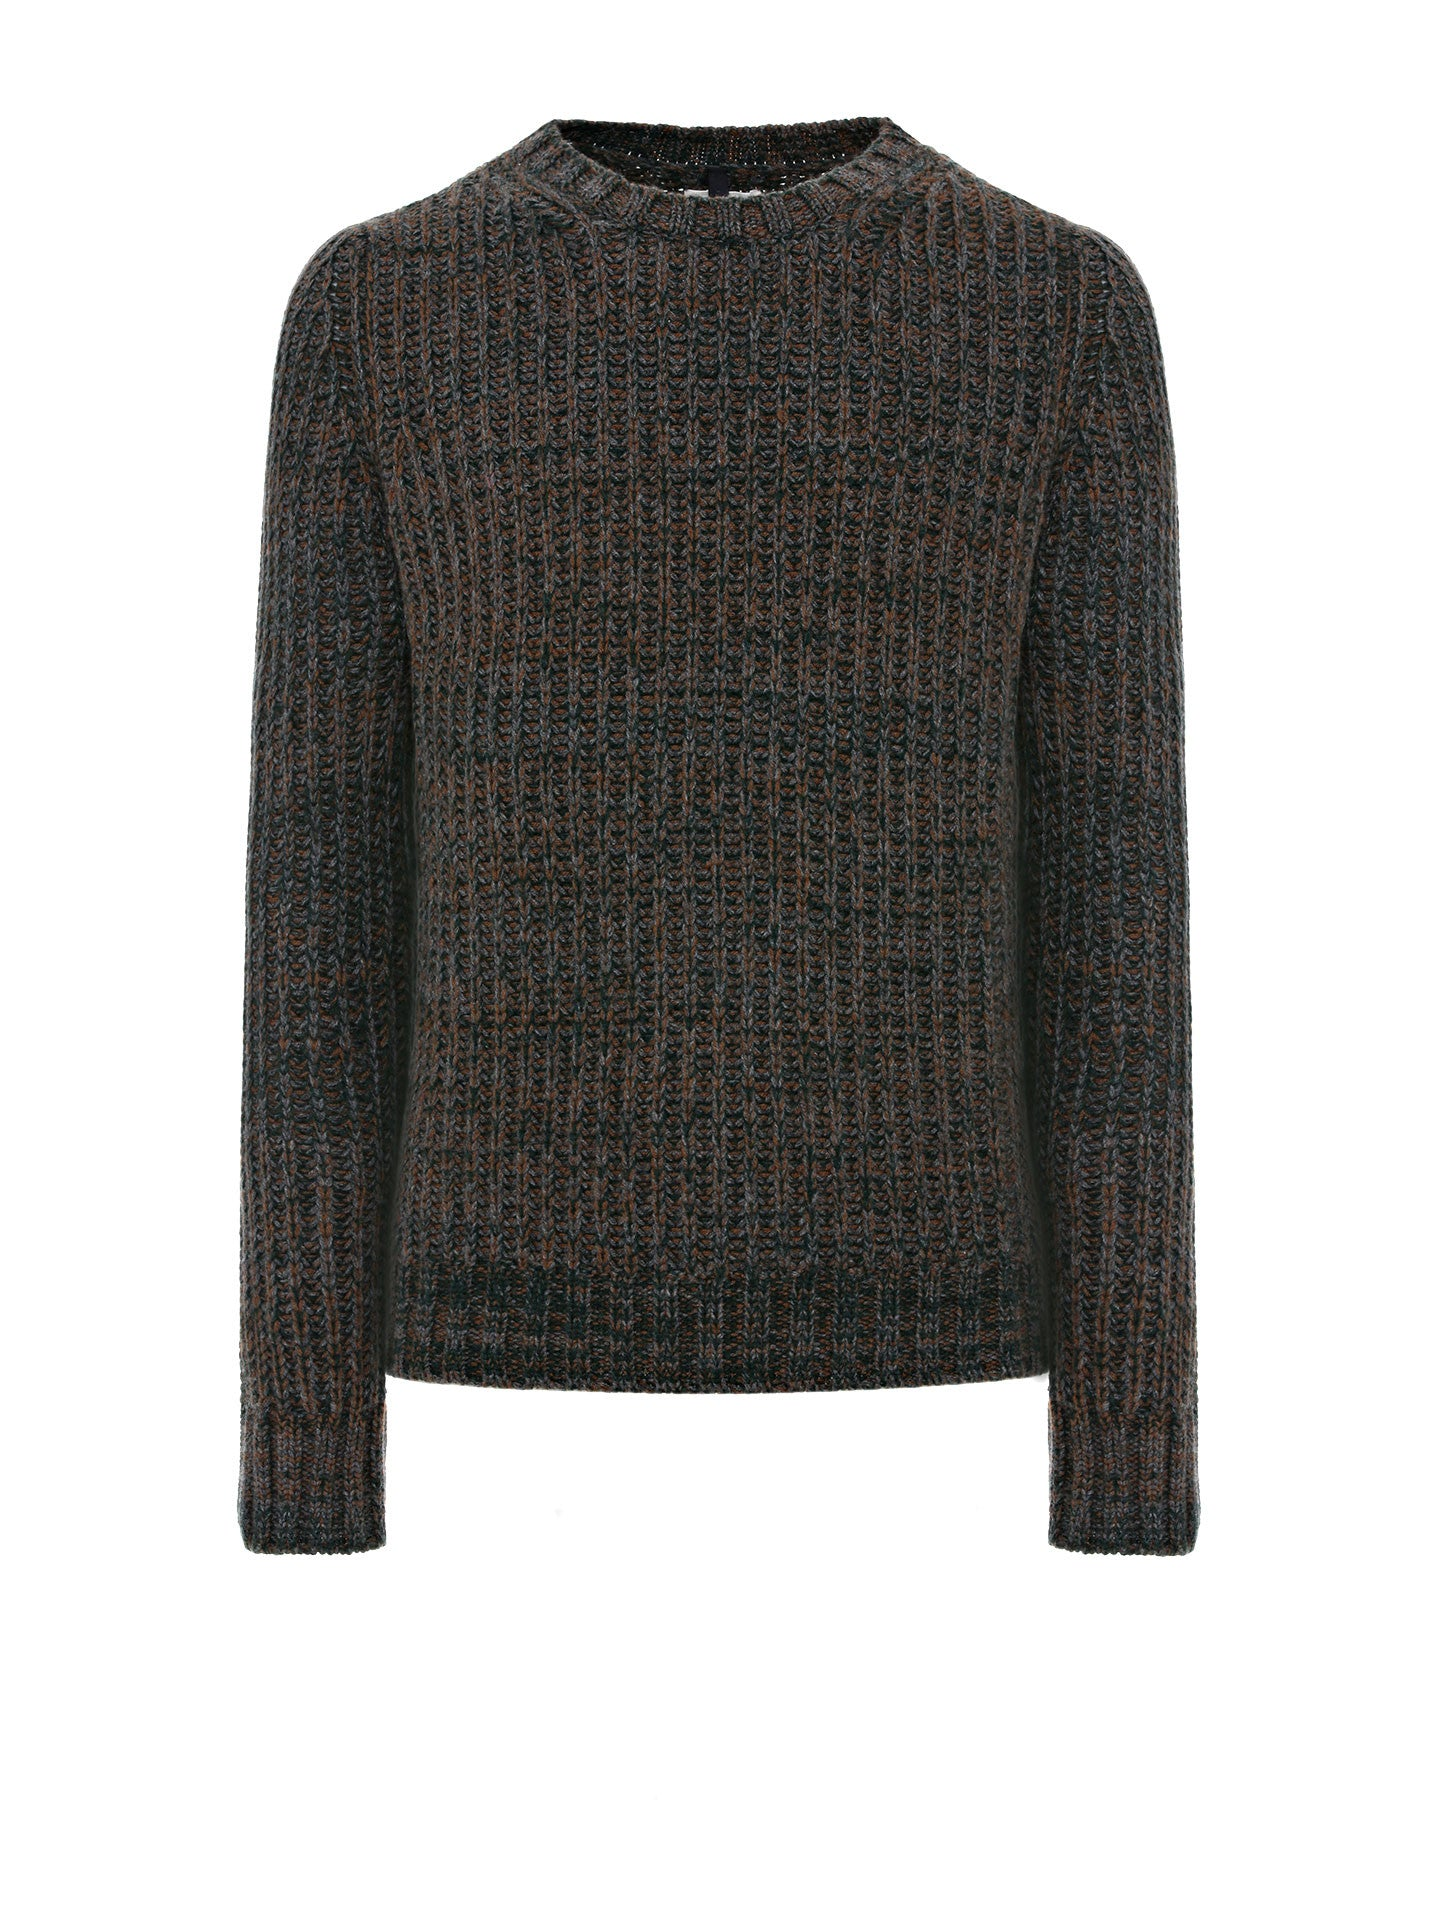 MEN'S CASHMERE KNIT